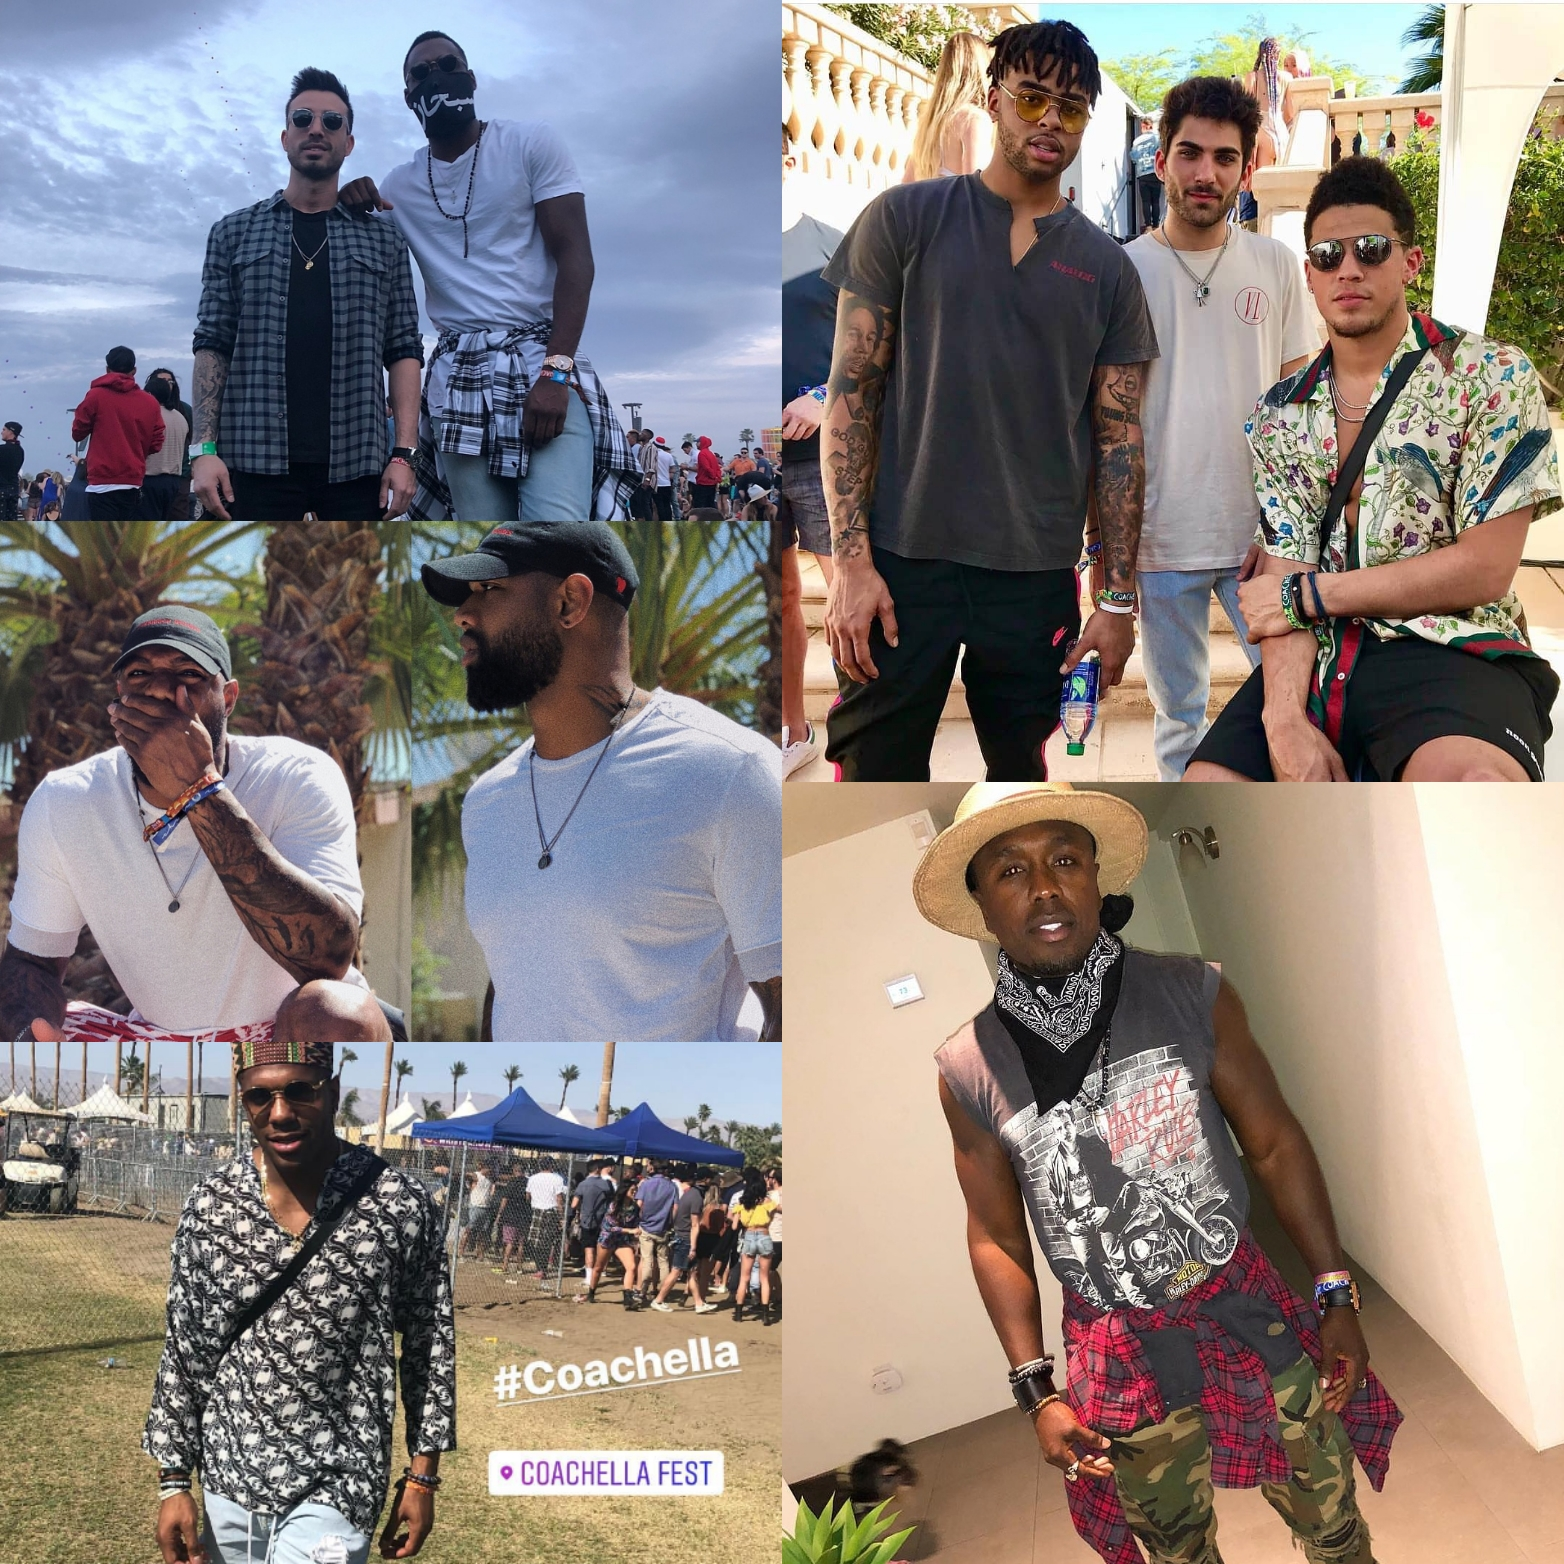 Athletes Coachella 2018 FITS: Dangelo Russell, Devin Booker, Rodney McLeod & More